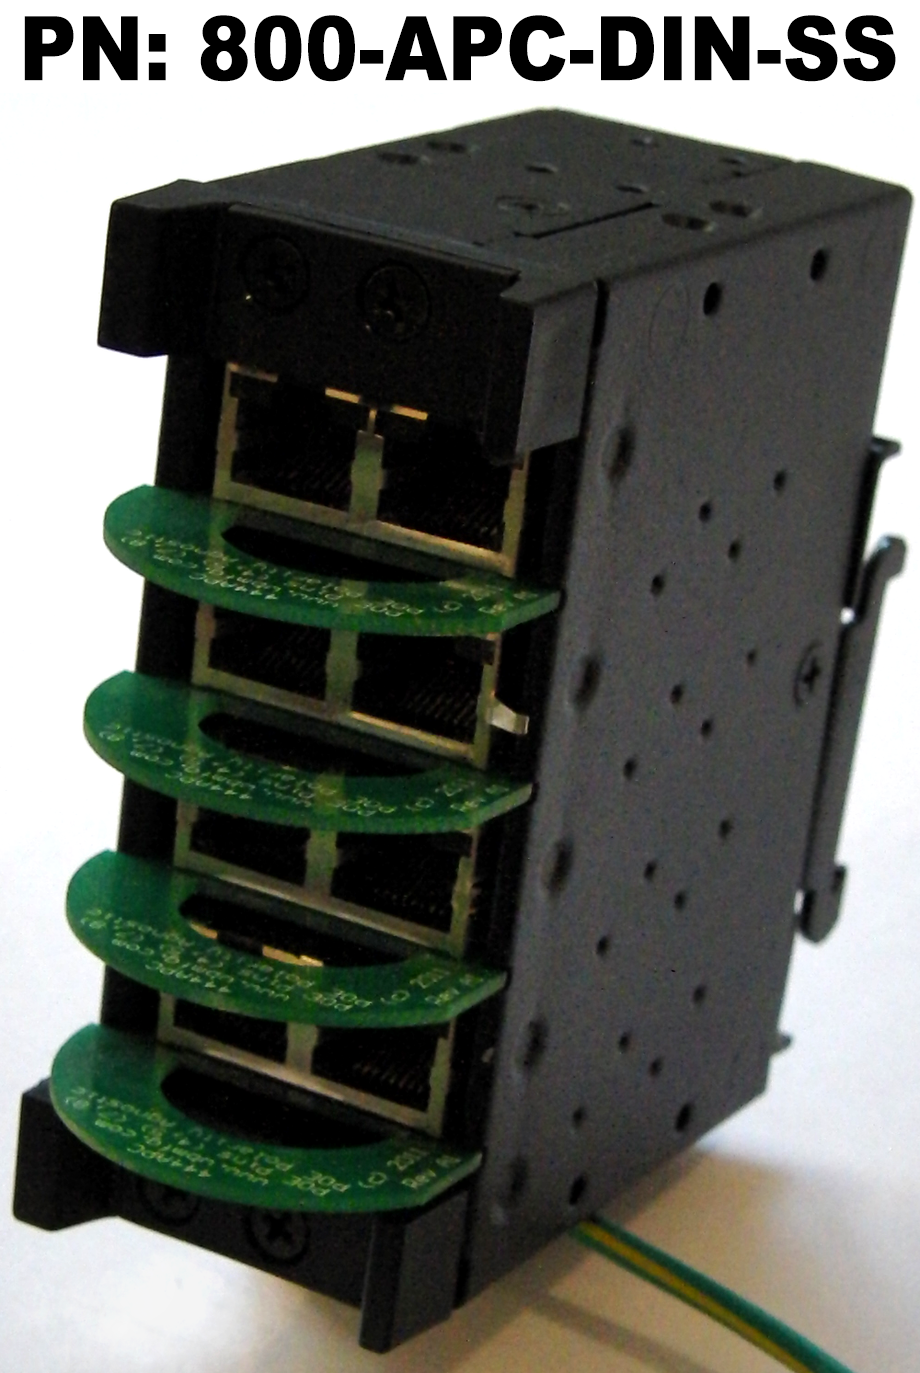 4 Slot DIN Mount Chassis accepts Surge Suppressors/Protectors